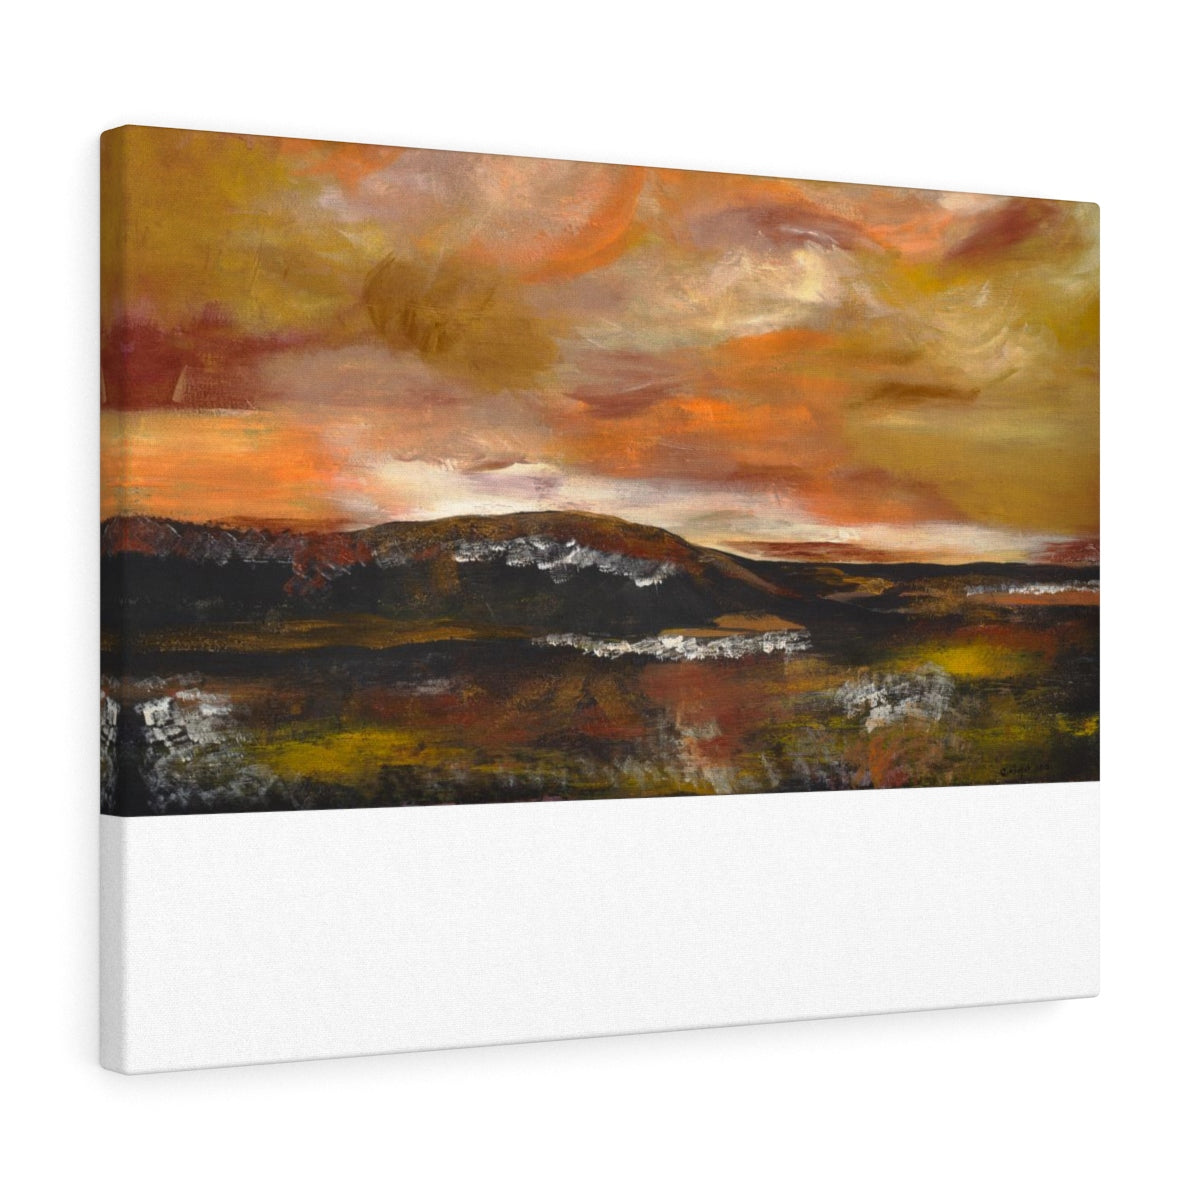 GOLDEN VALLEY  Canvas Gallery Wraps  36: x 12""